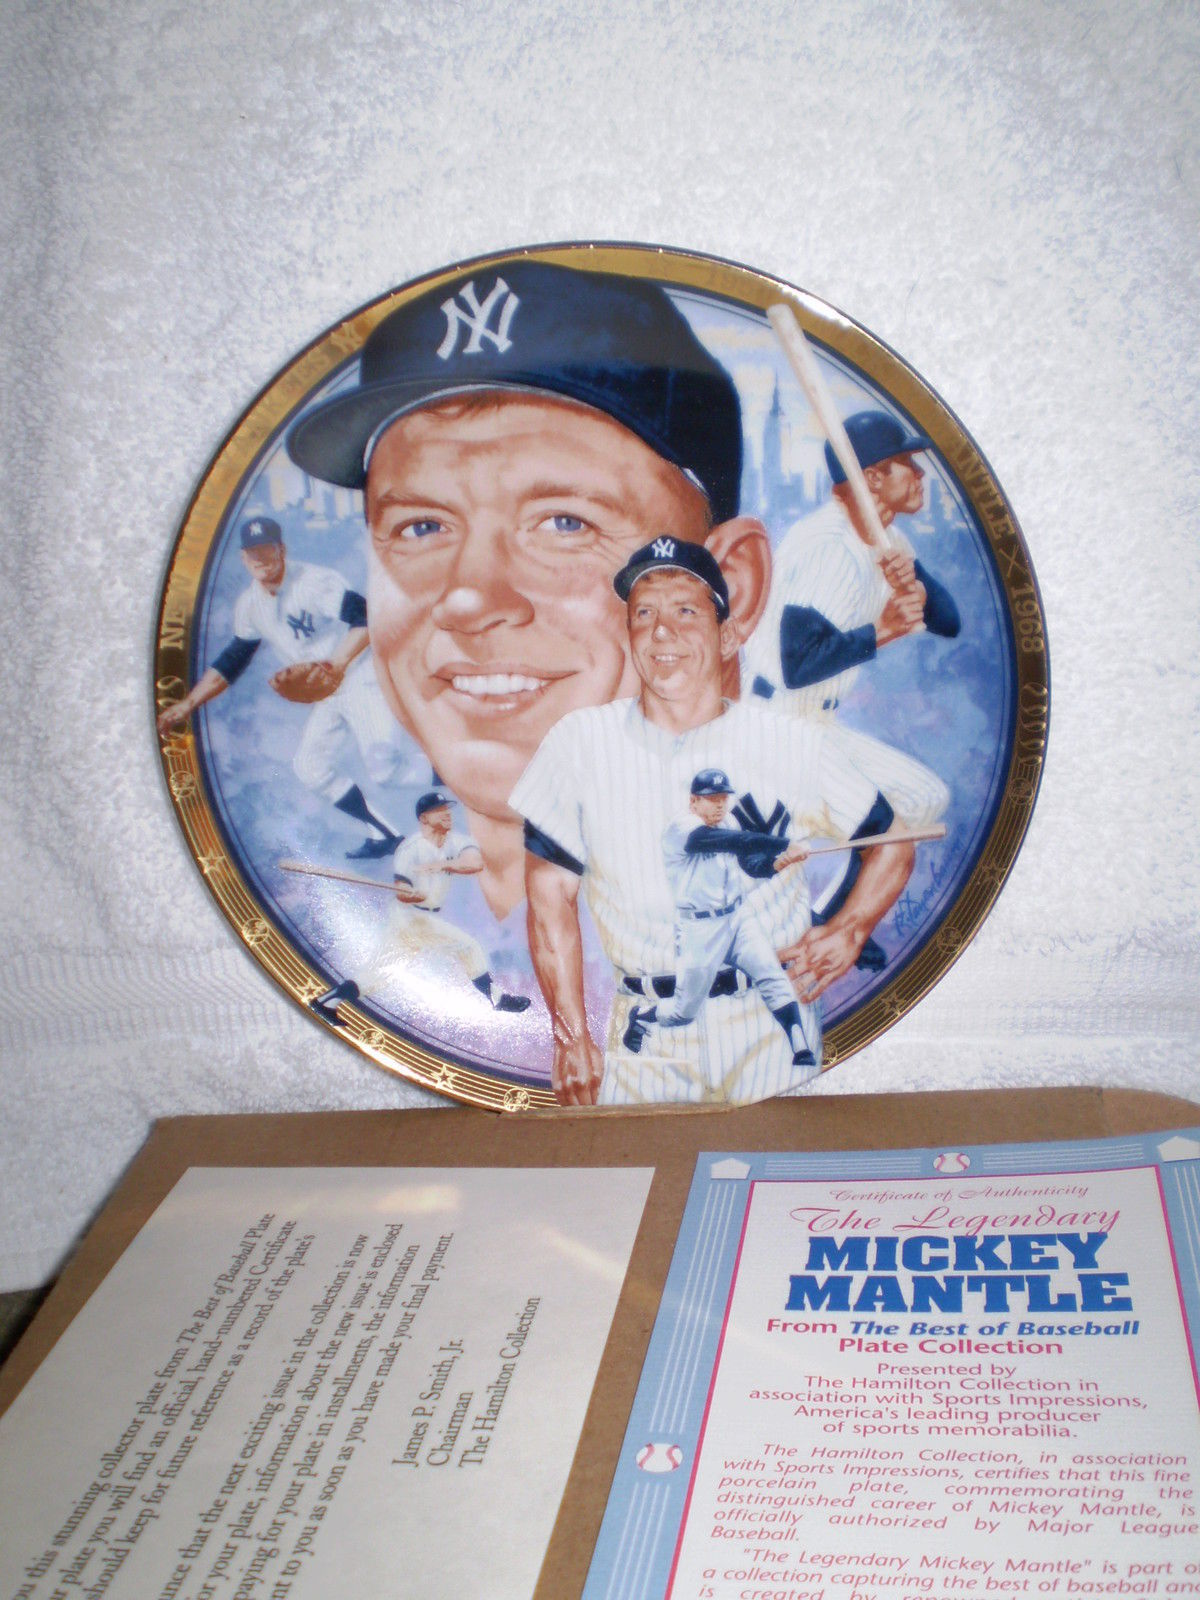 Mickey Mantle 1993 Presented by The Hamilton Collection